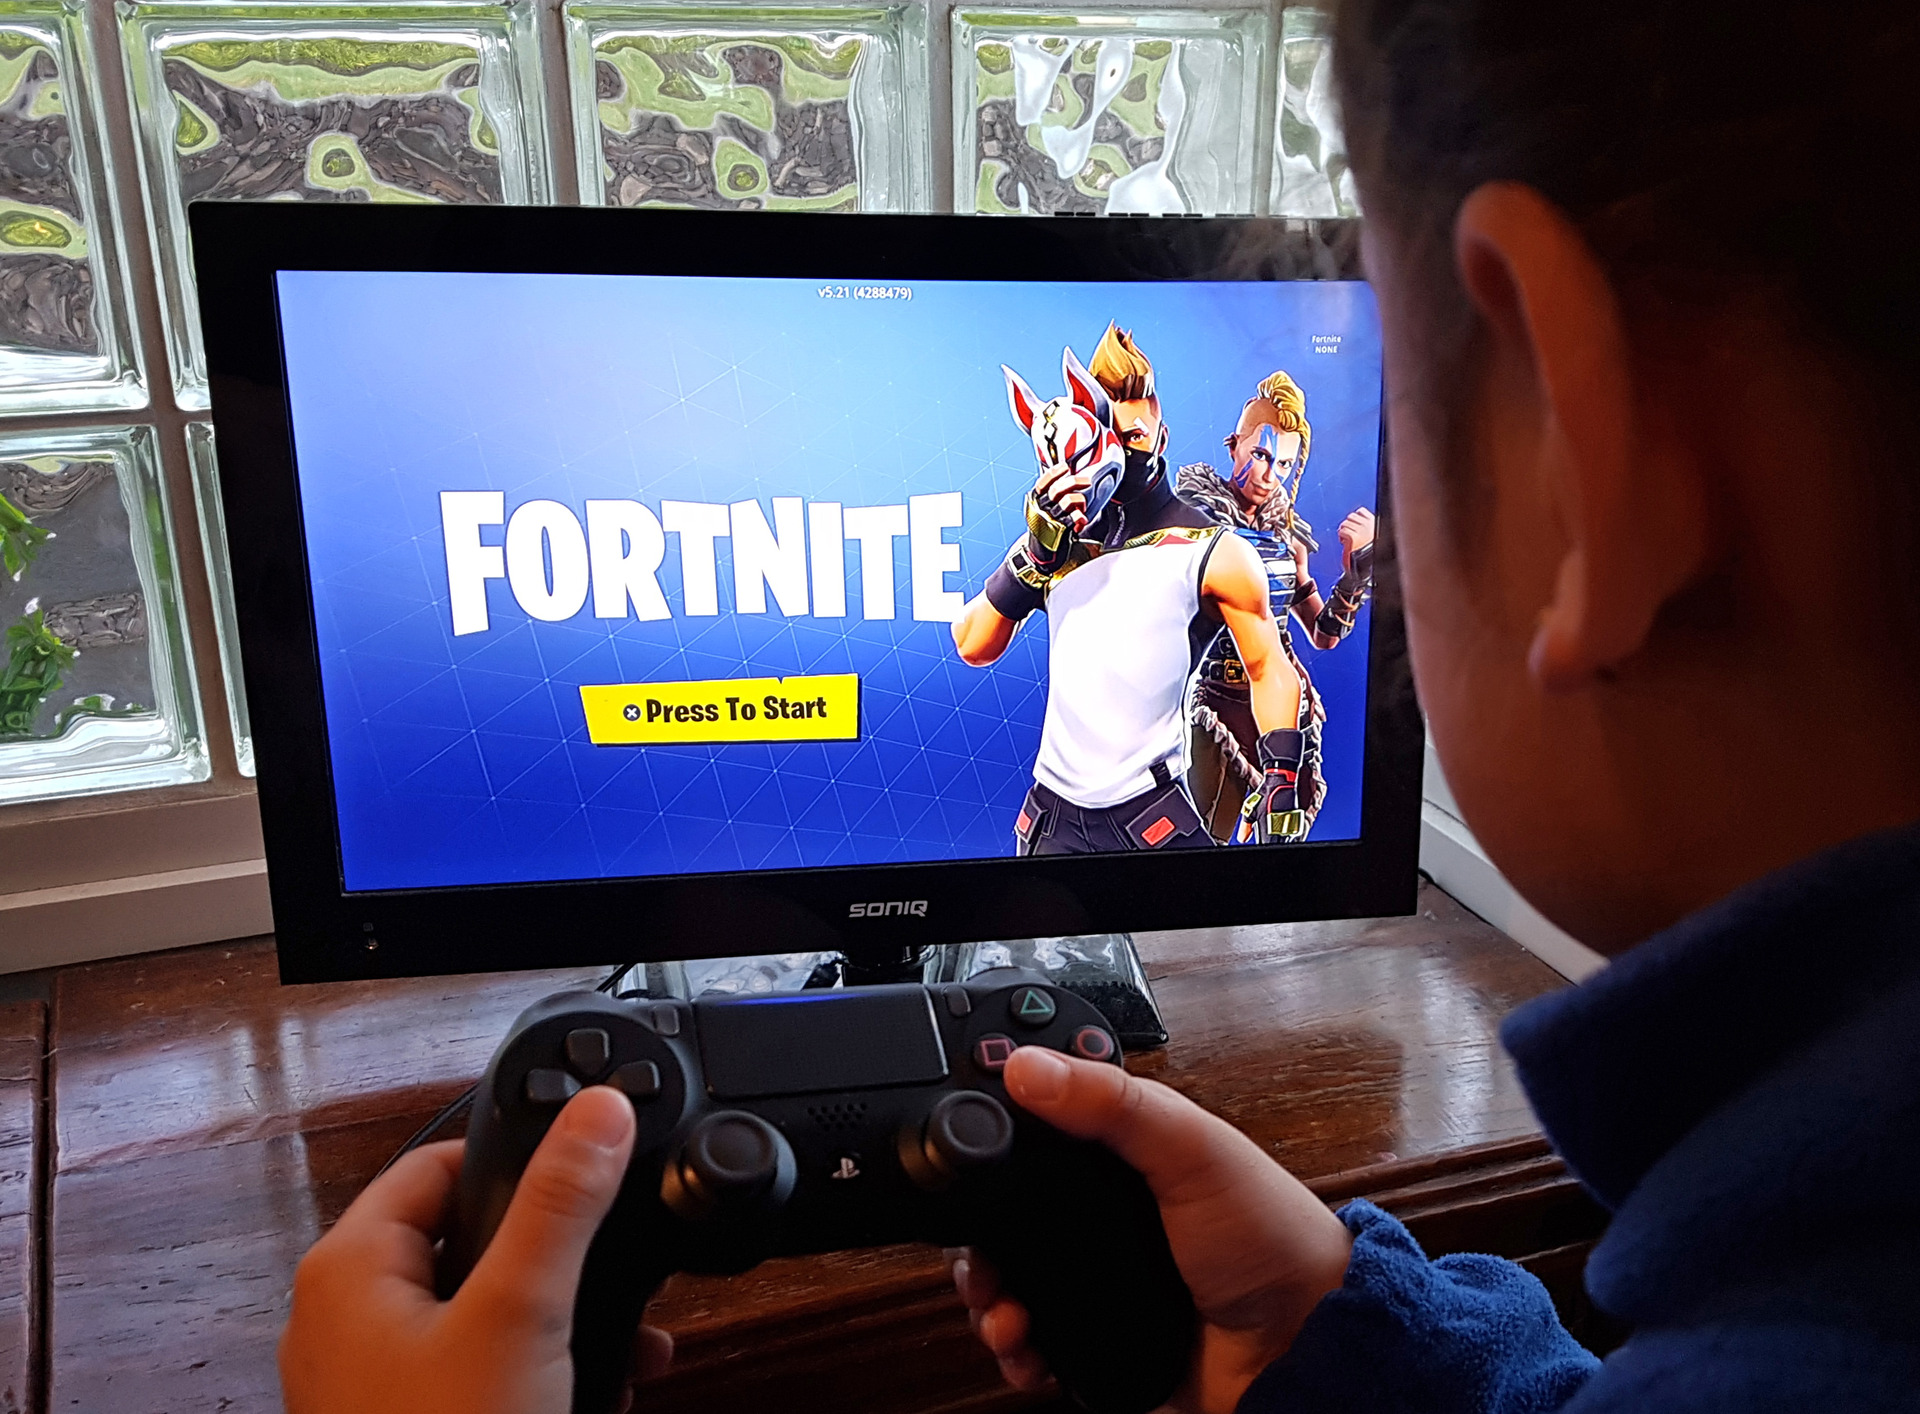 Principals concerned about late-night online gaming as 'Fortnite' popularity soars